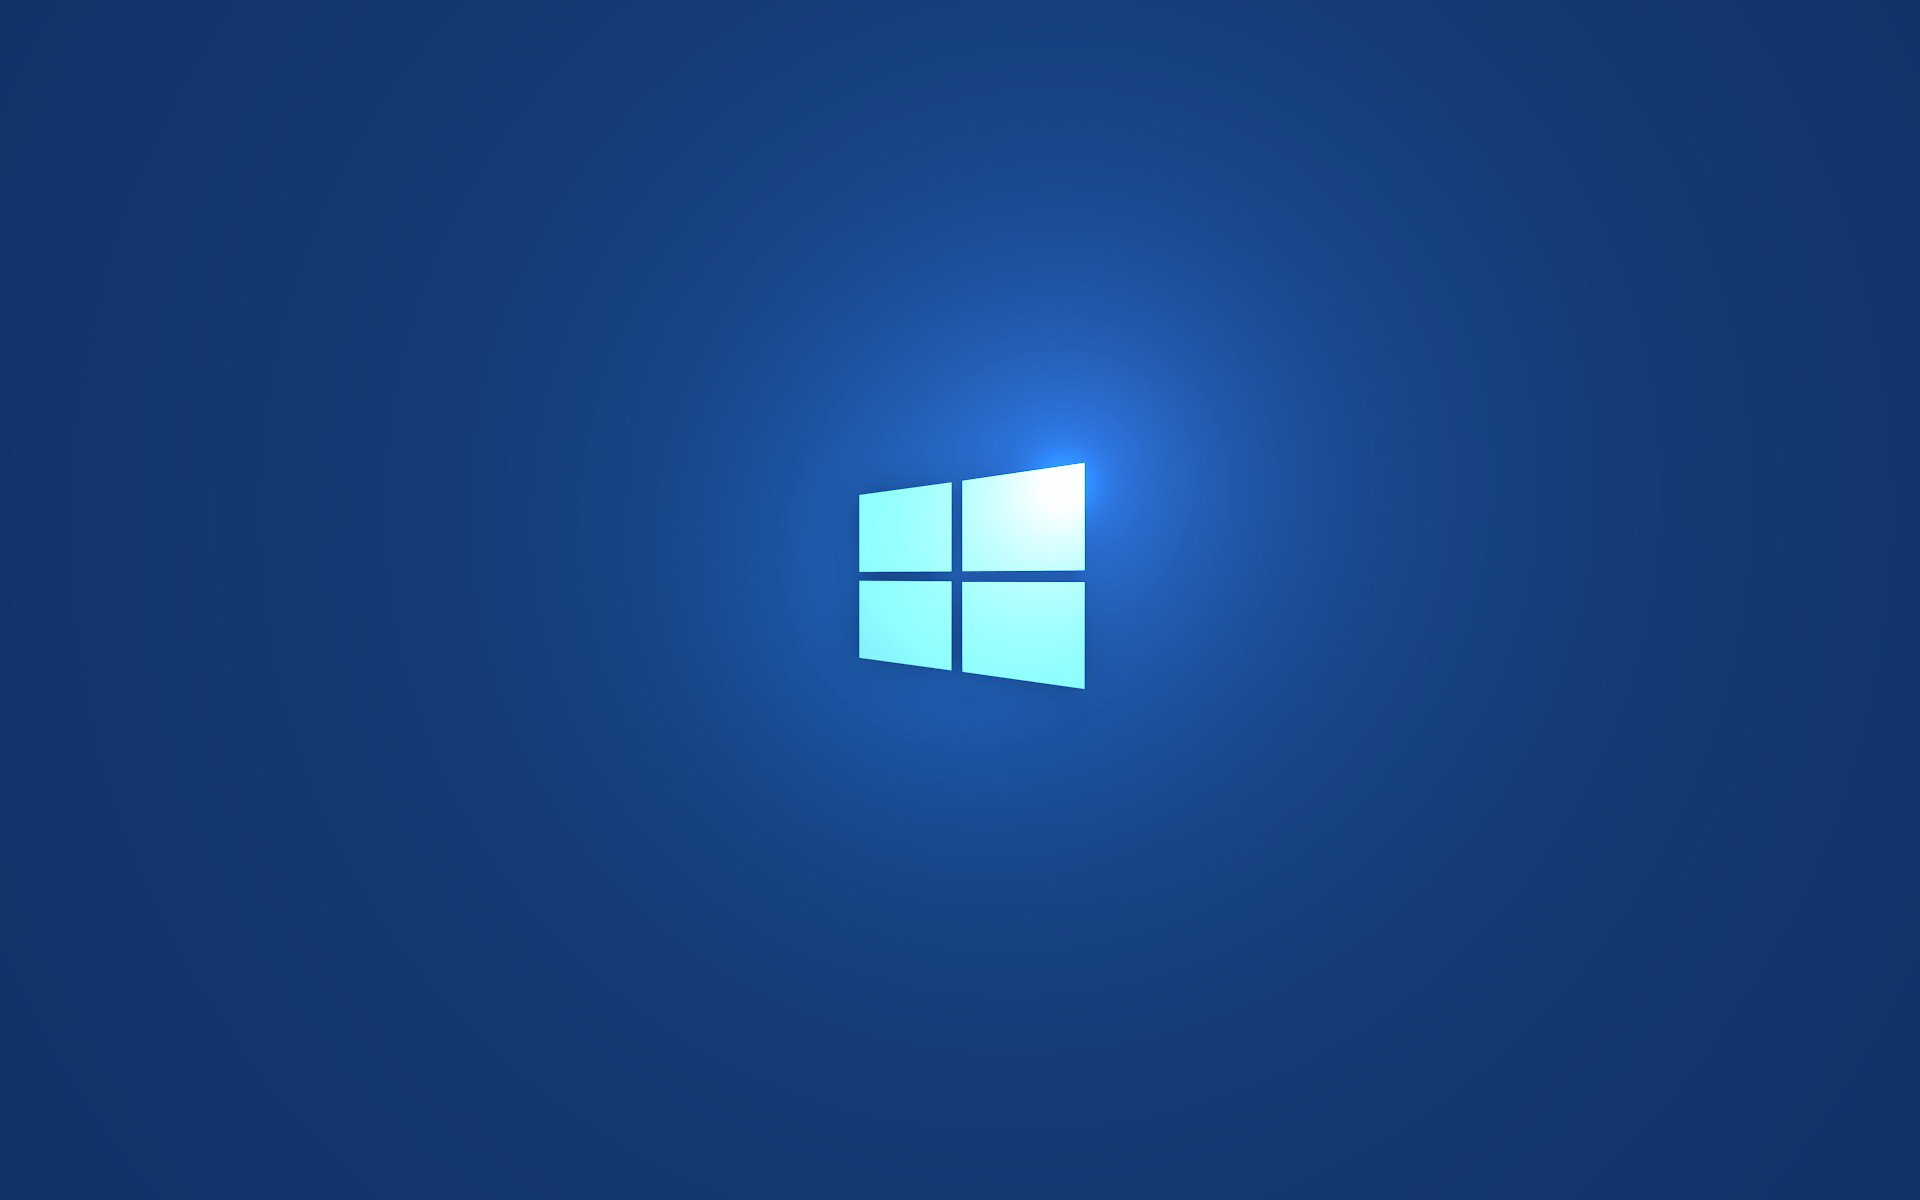 Windows 8.1 Wallpapers HD For Desktop Backgrounds